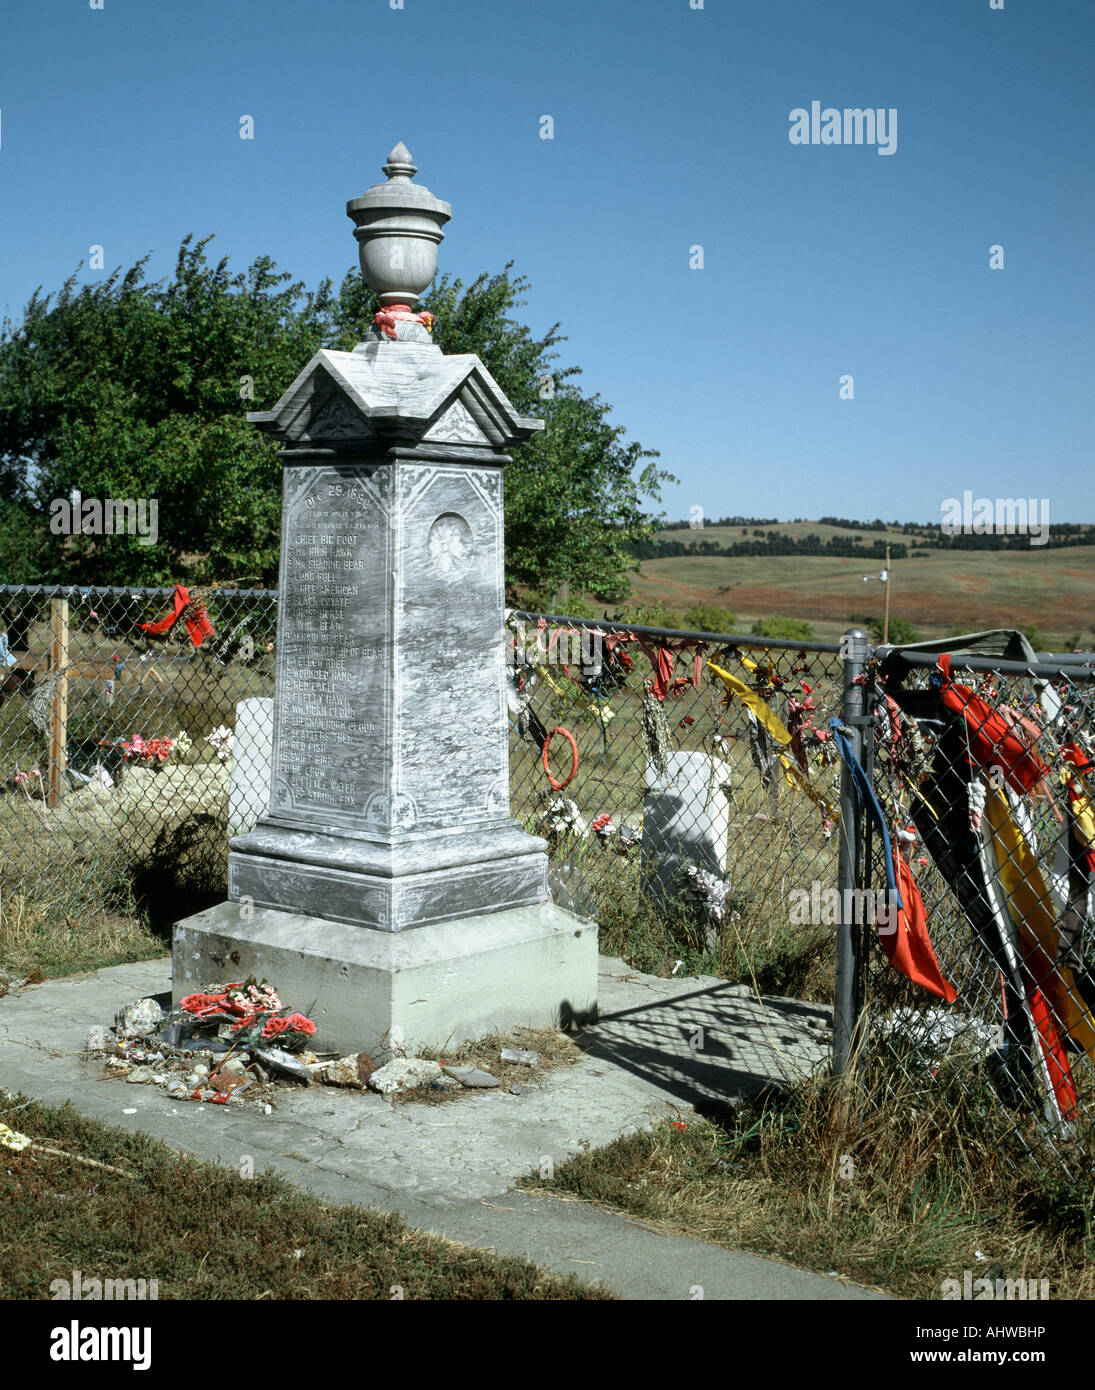 Battle of Wounded Knee monument with surrounding prayer flags in cemetery Pine Ridge reservation South dakota USA Stock Photo